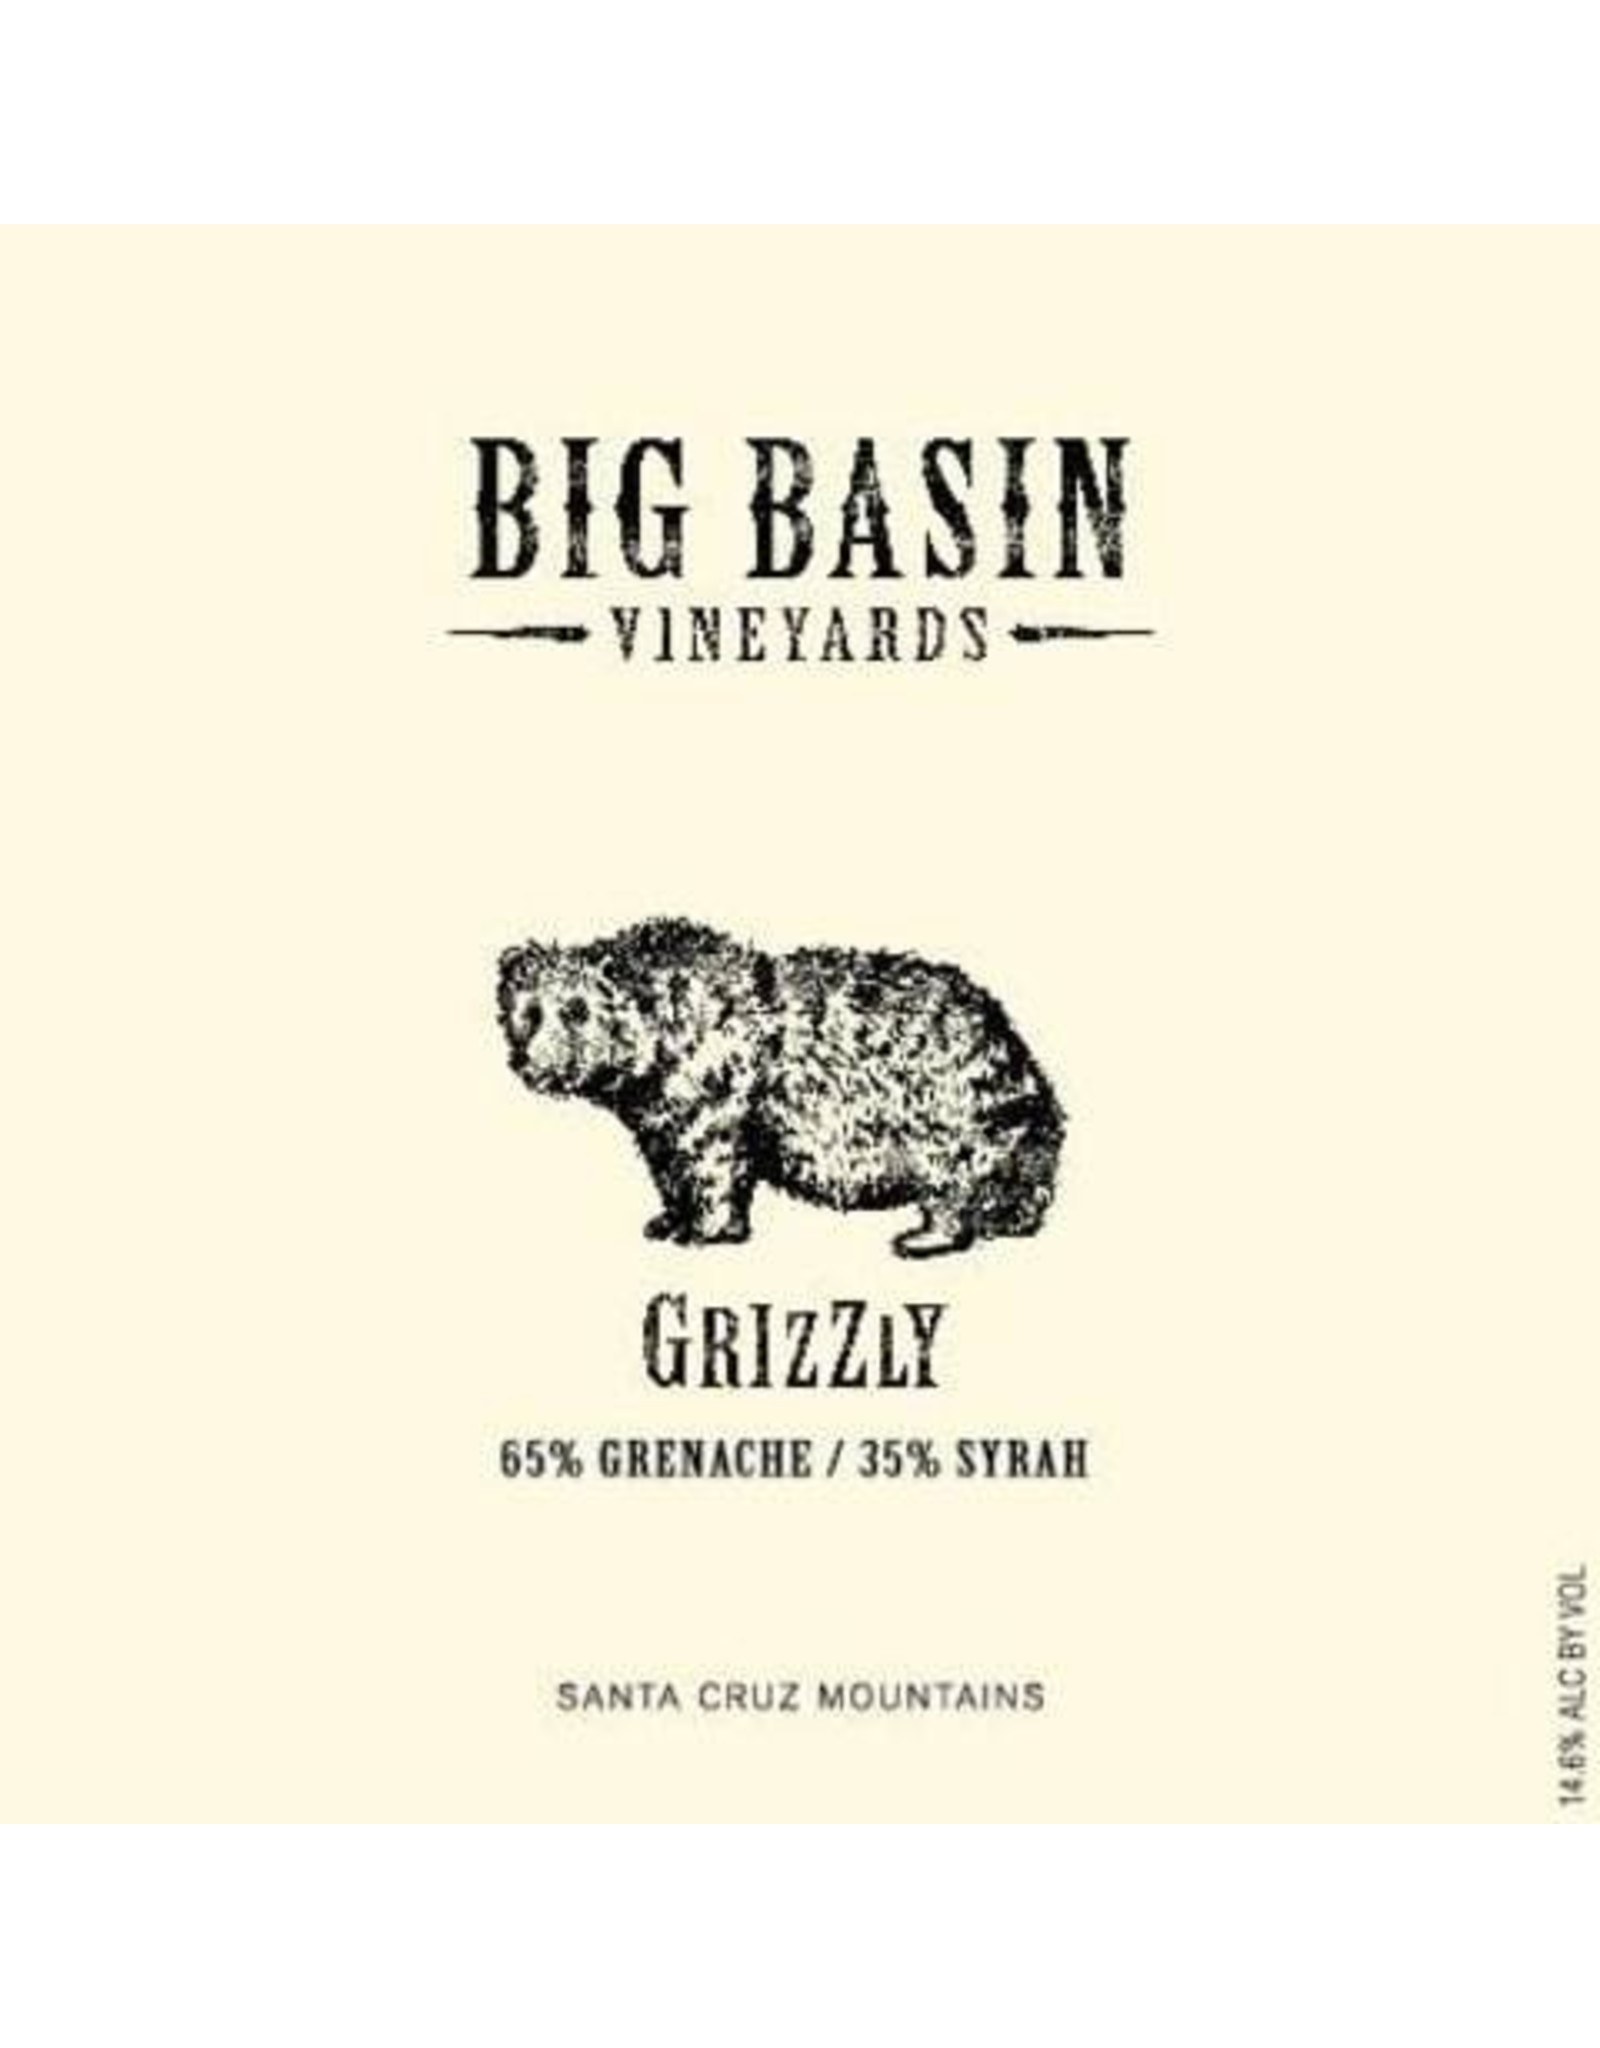 Big Basin Grizzly Grenache 2013